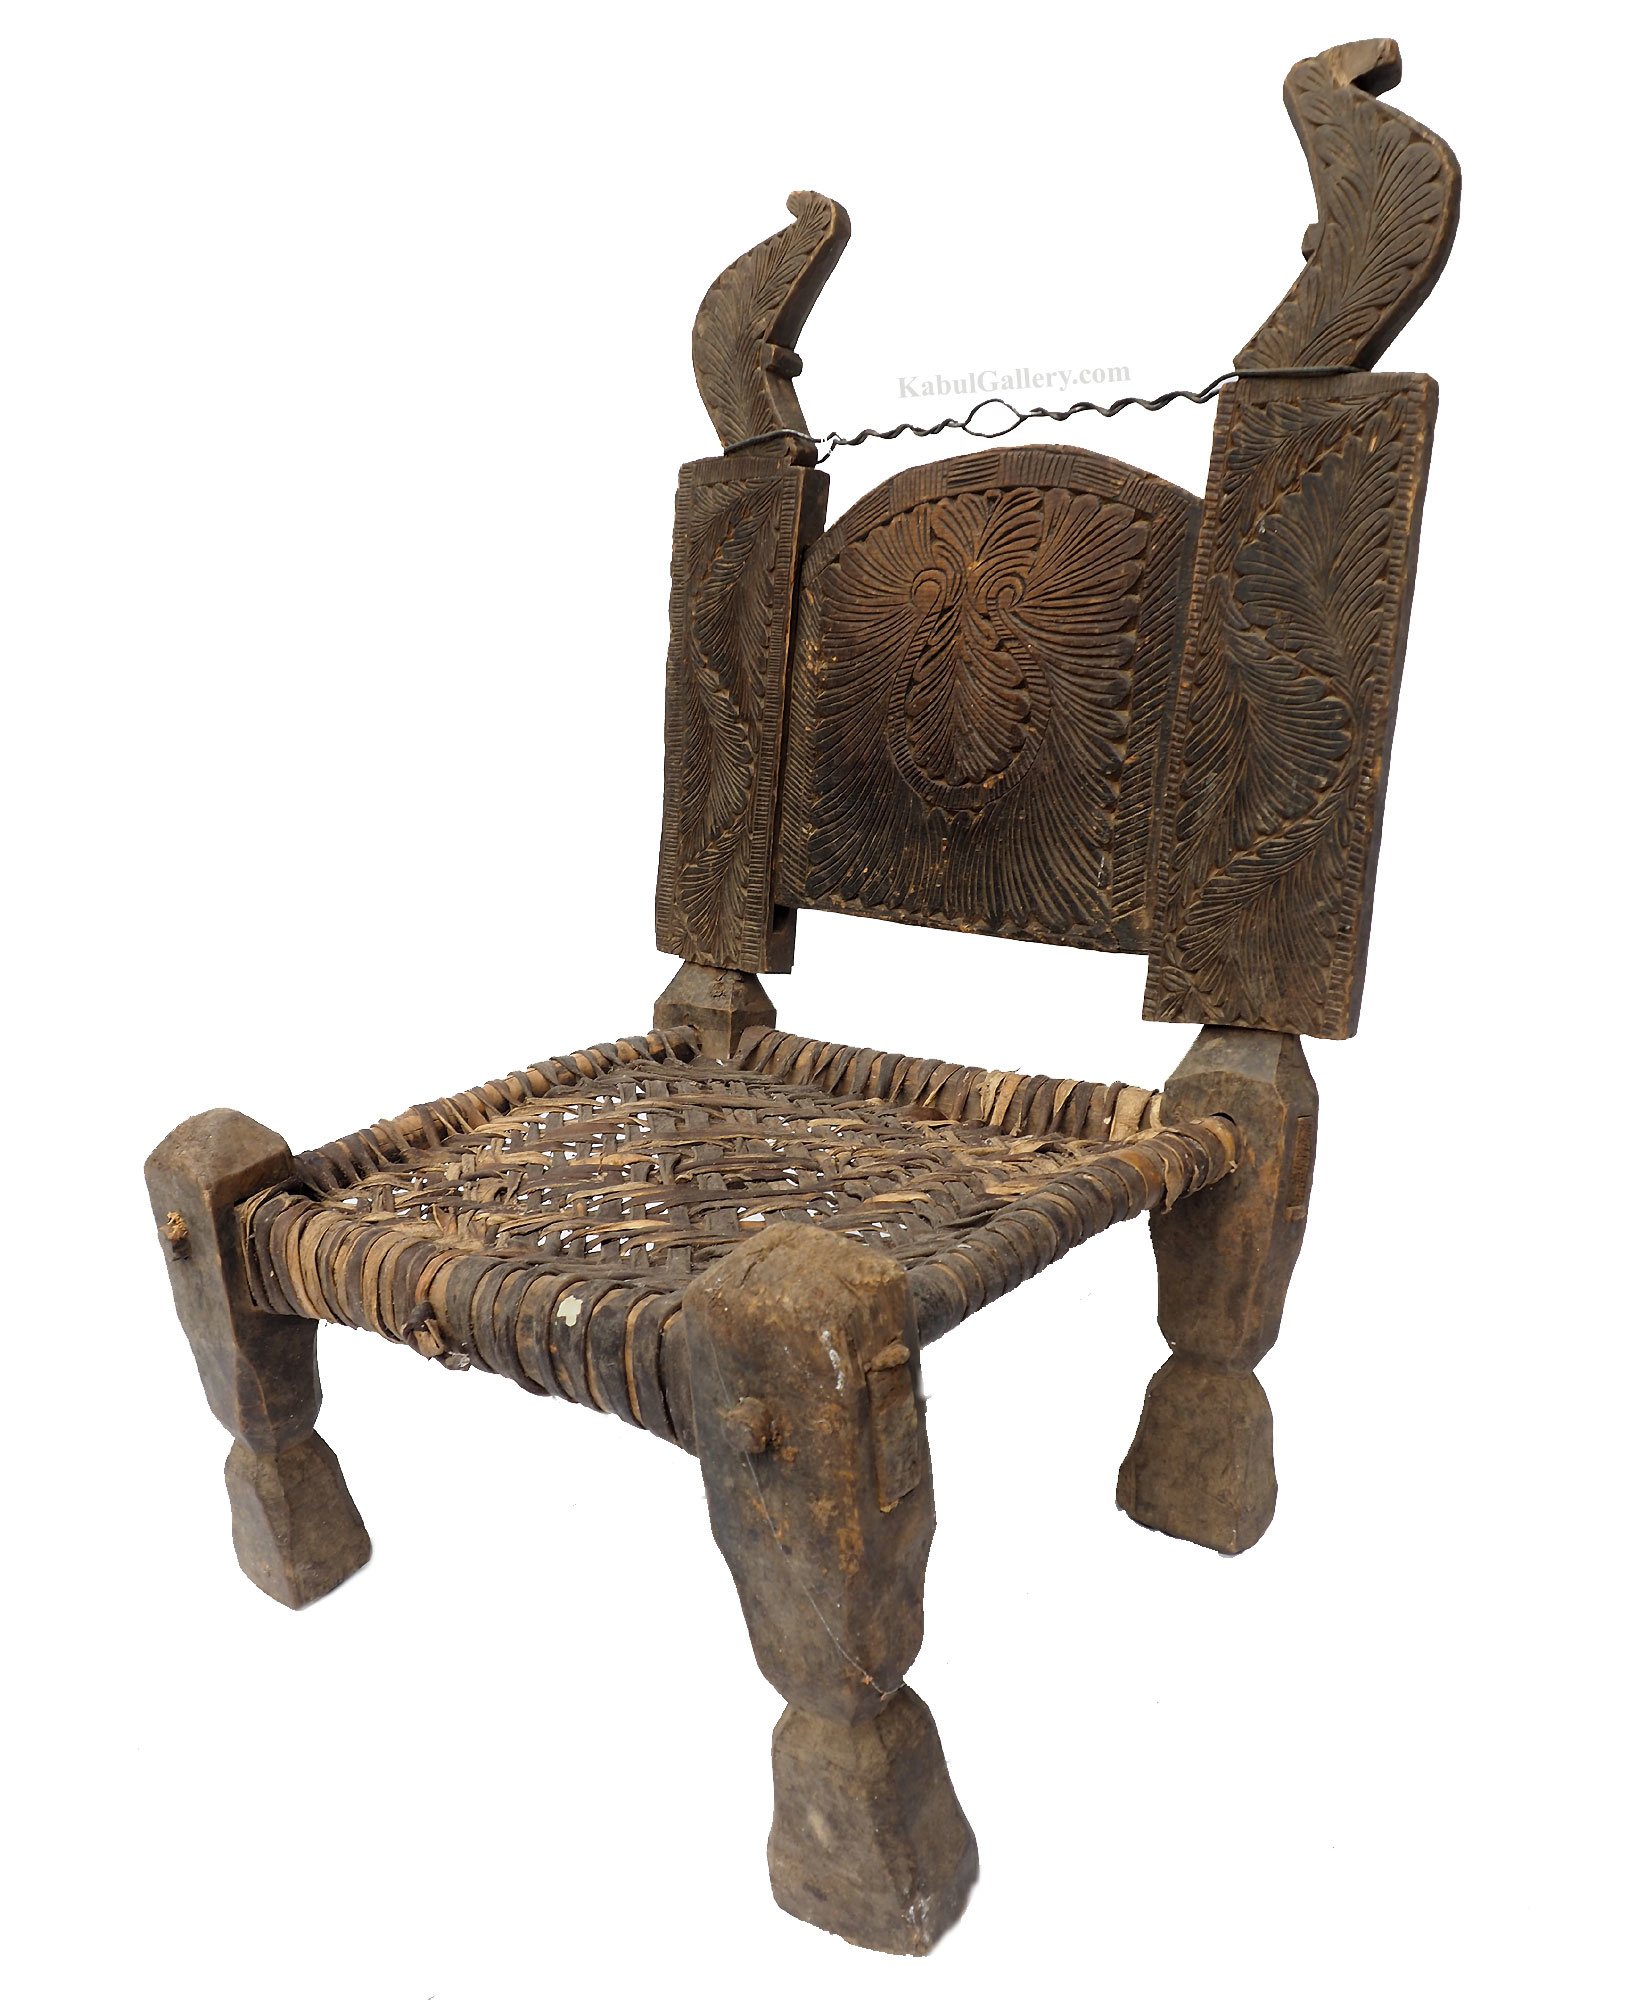 Antique Nuristan Chair Stuhl No: C